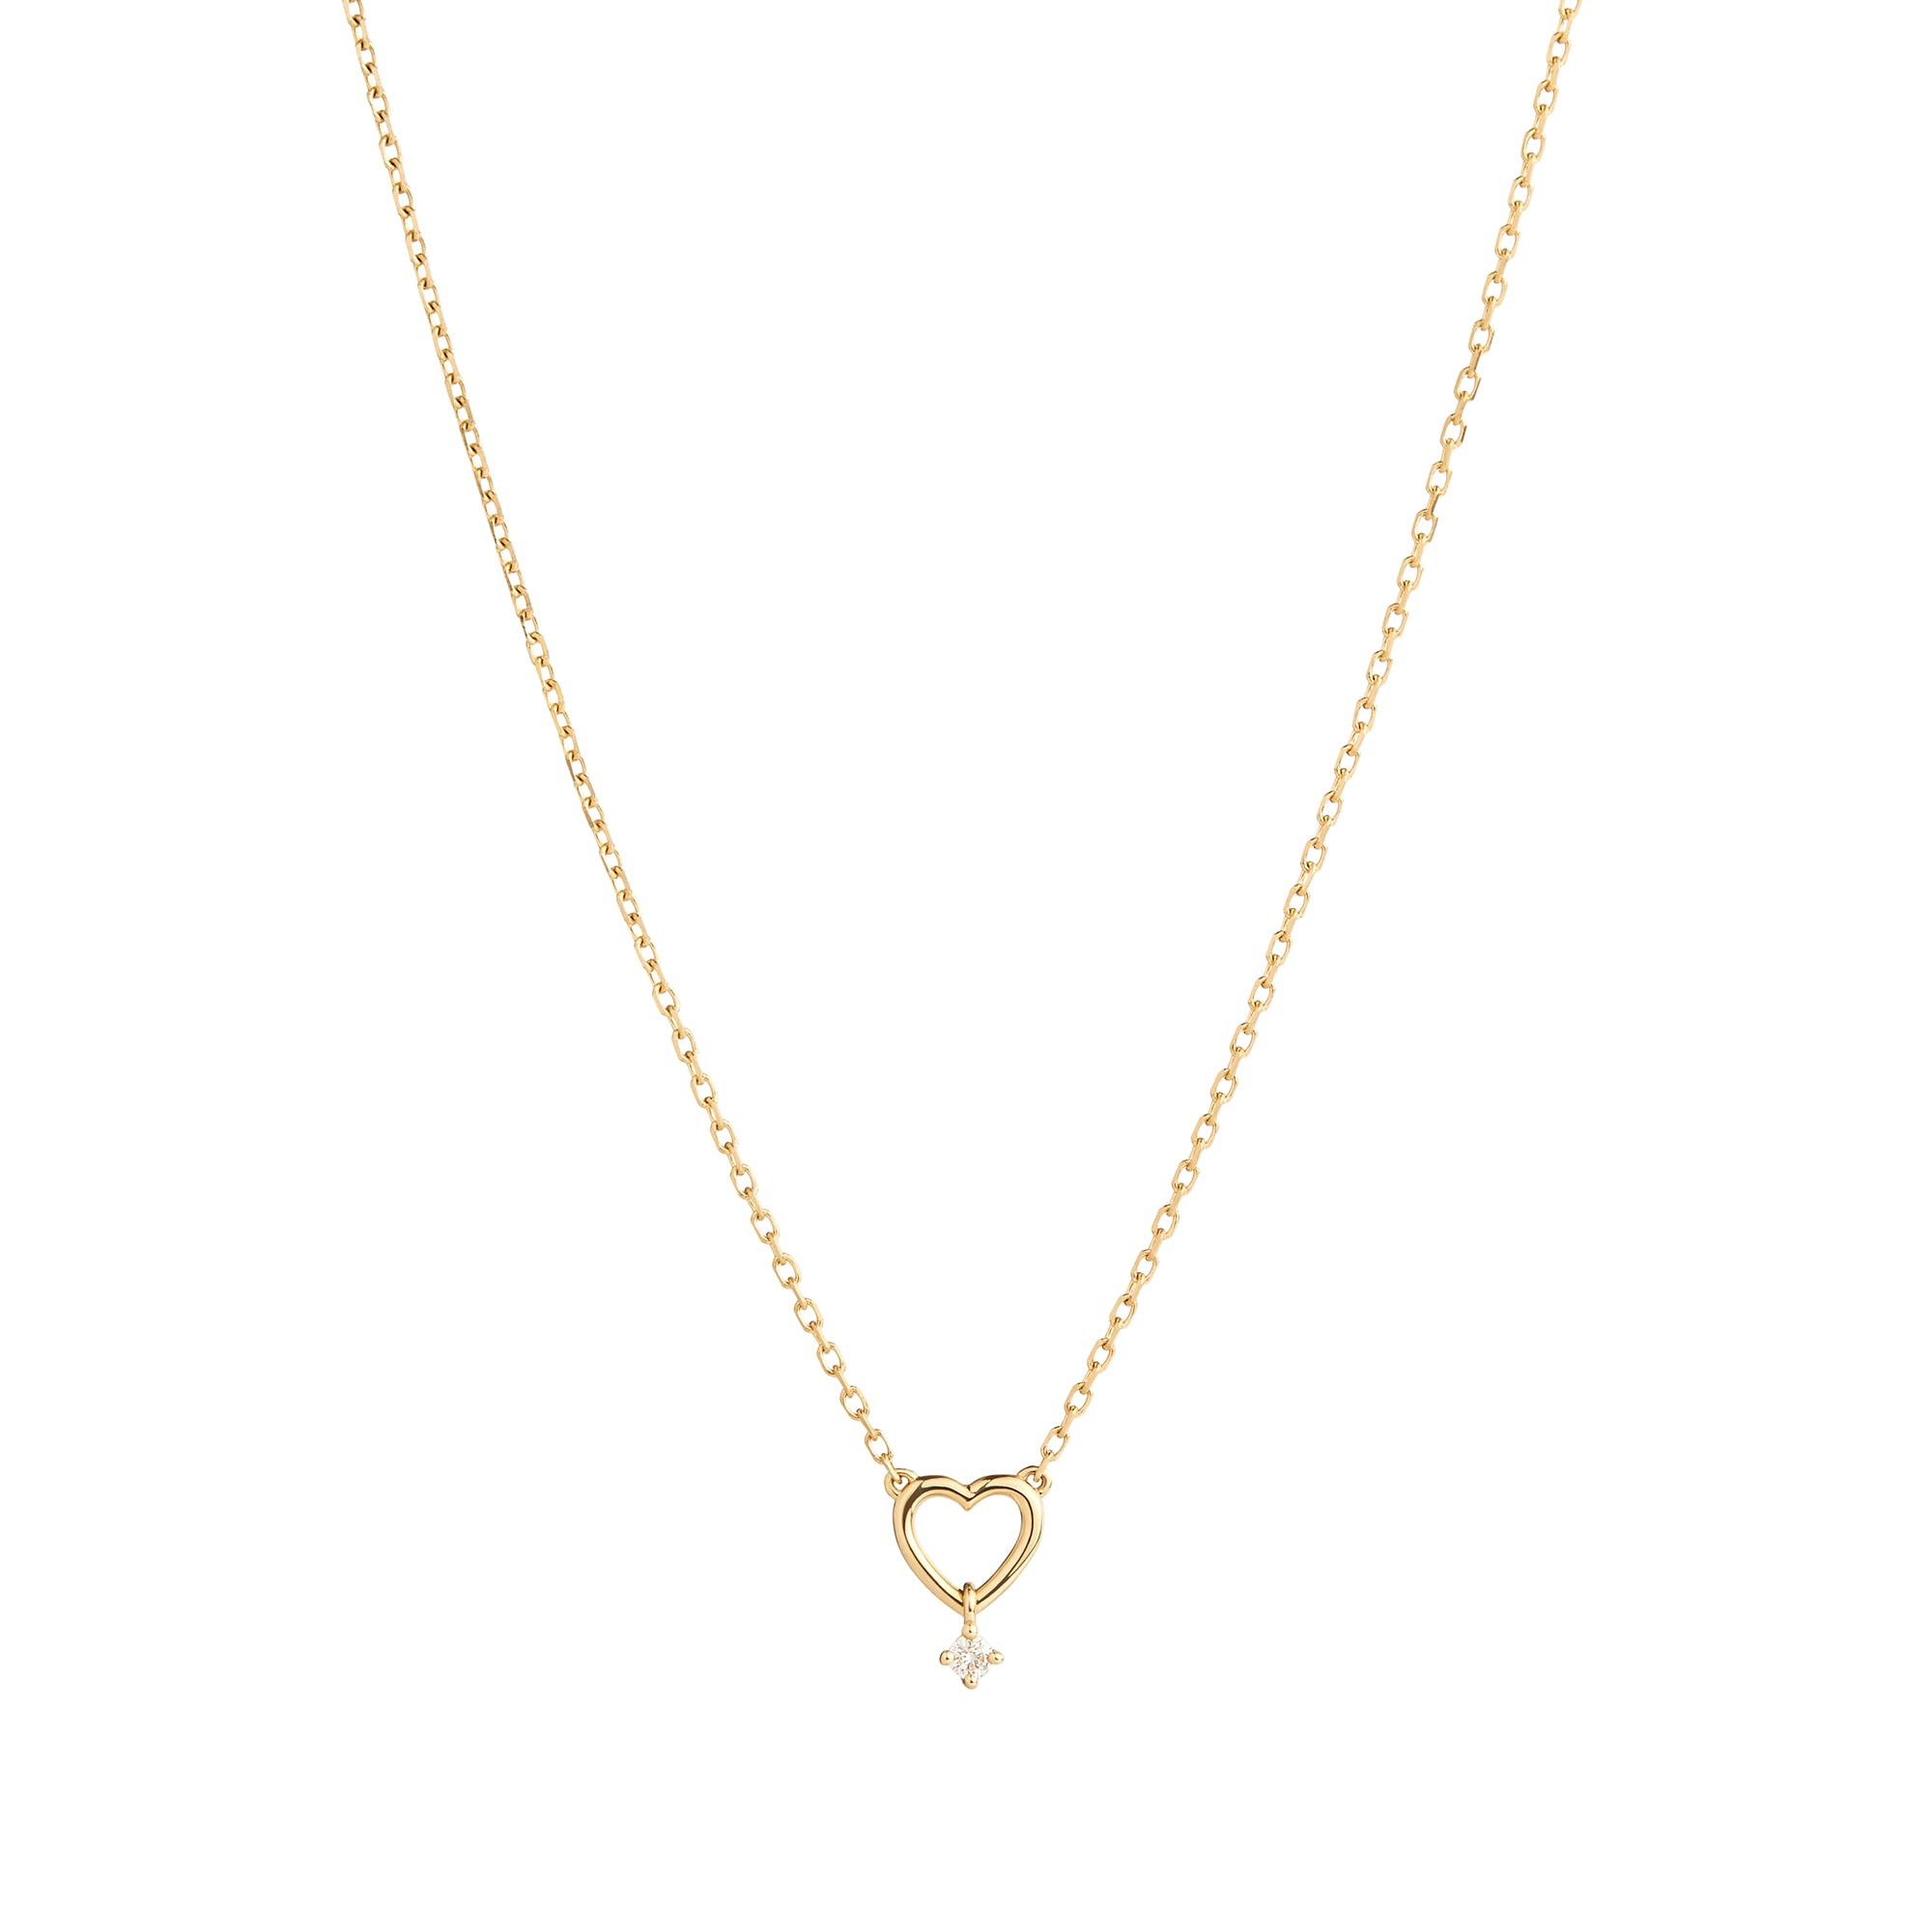 1HOME1 - Scintilla Amore Necklace - RUIFIER